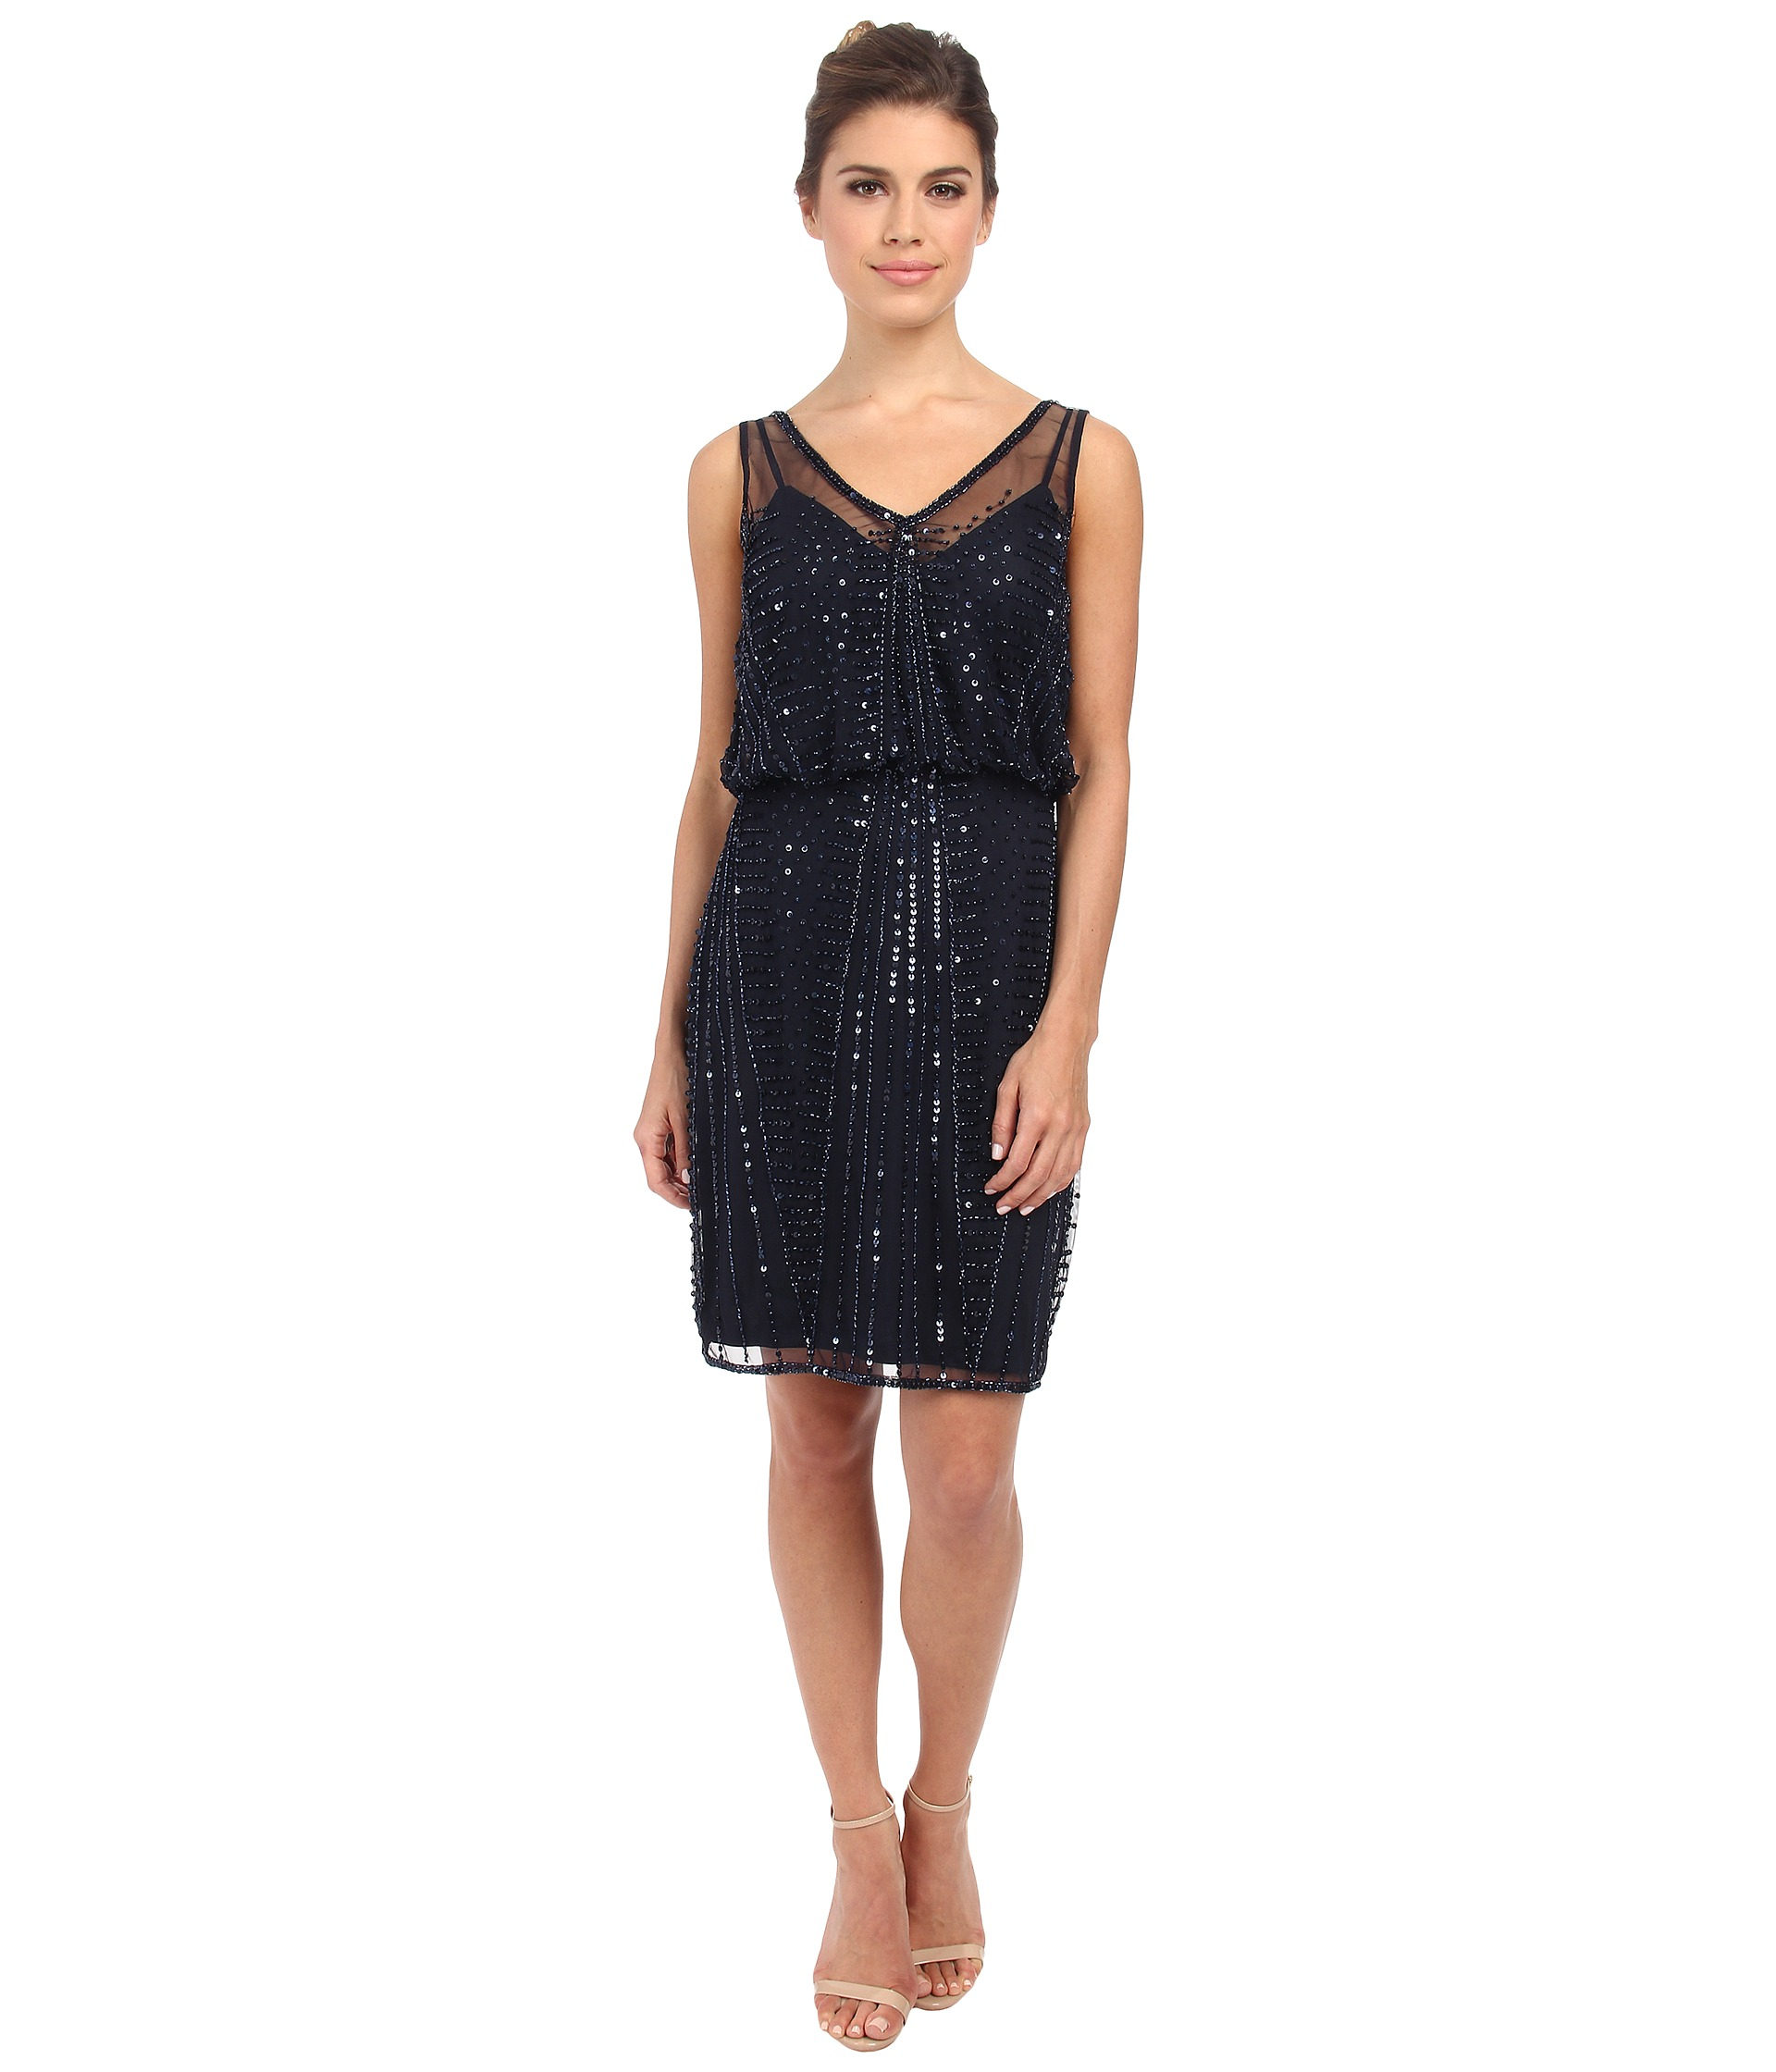 6fc17bdb674 Adrianna Papell Short Beaded Cocktail Dress in Blue - Lyst